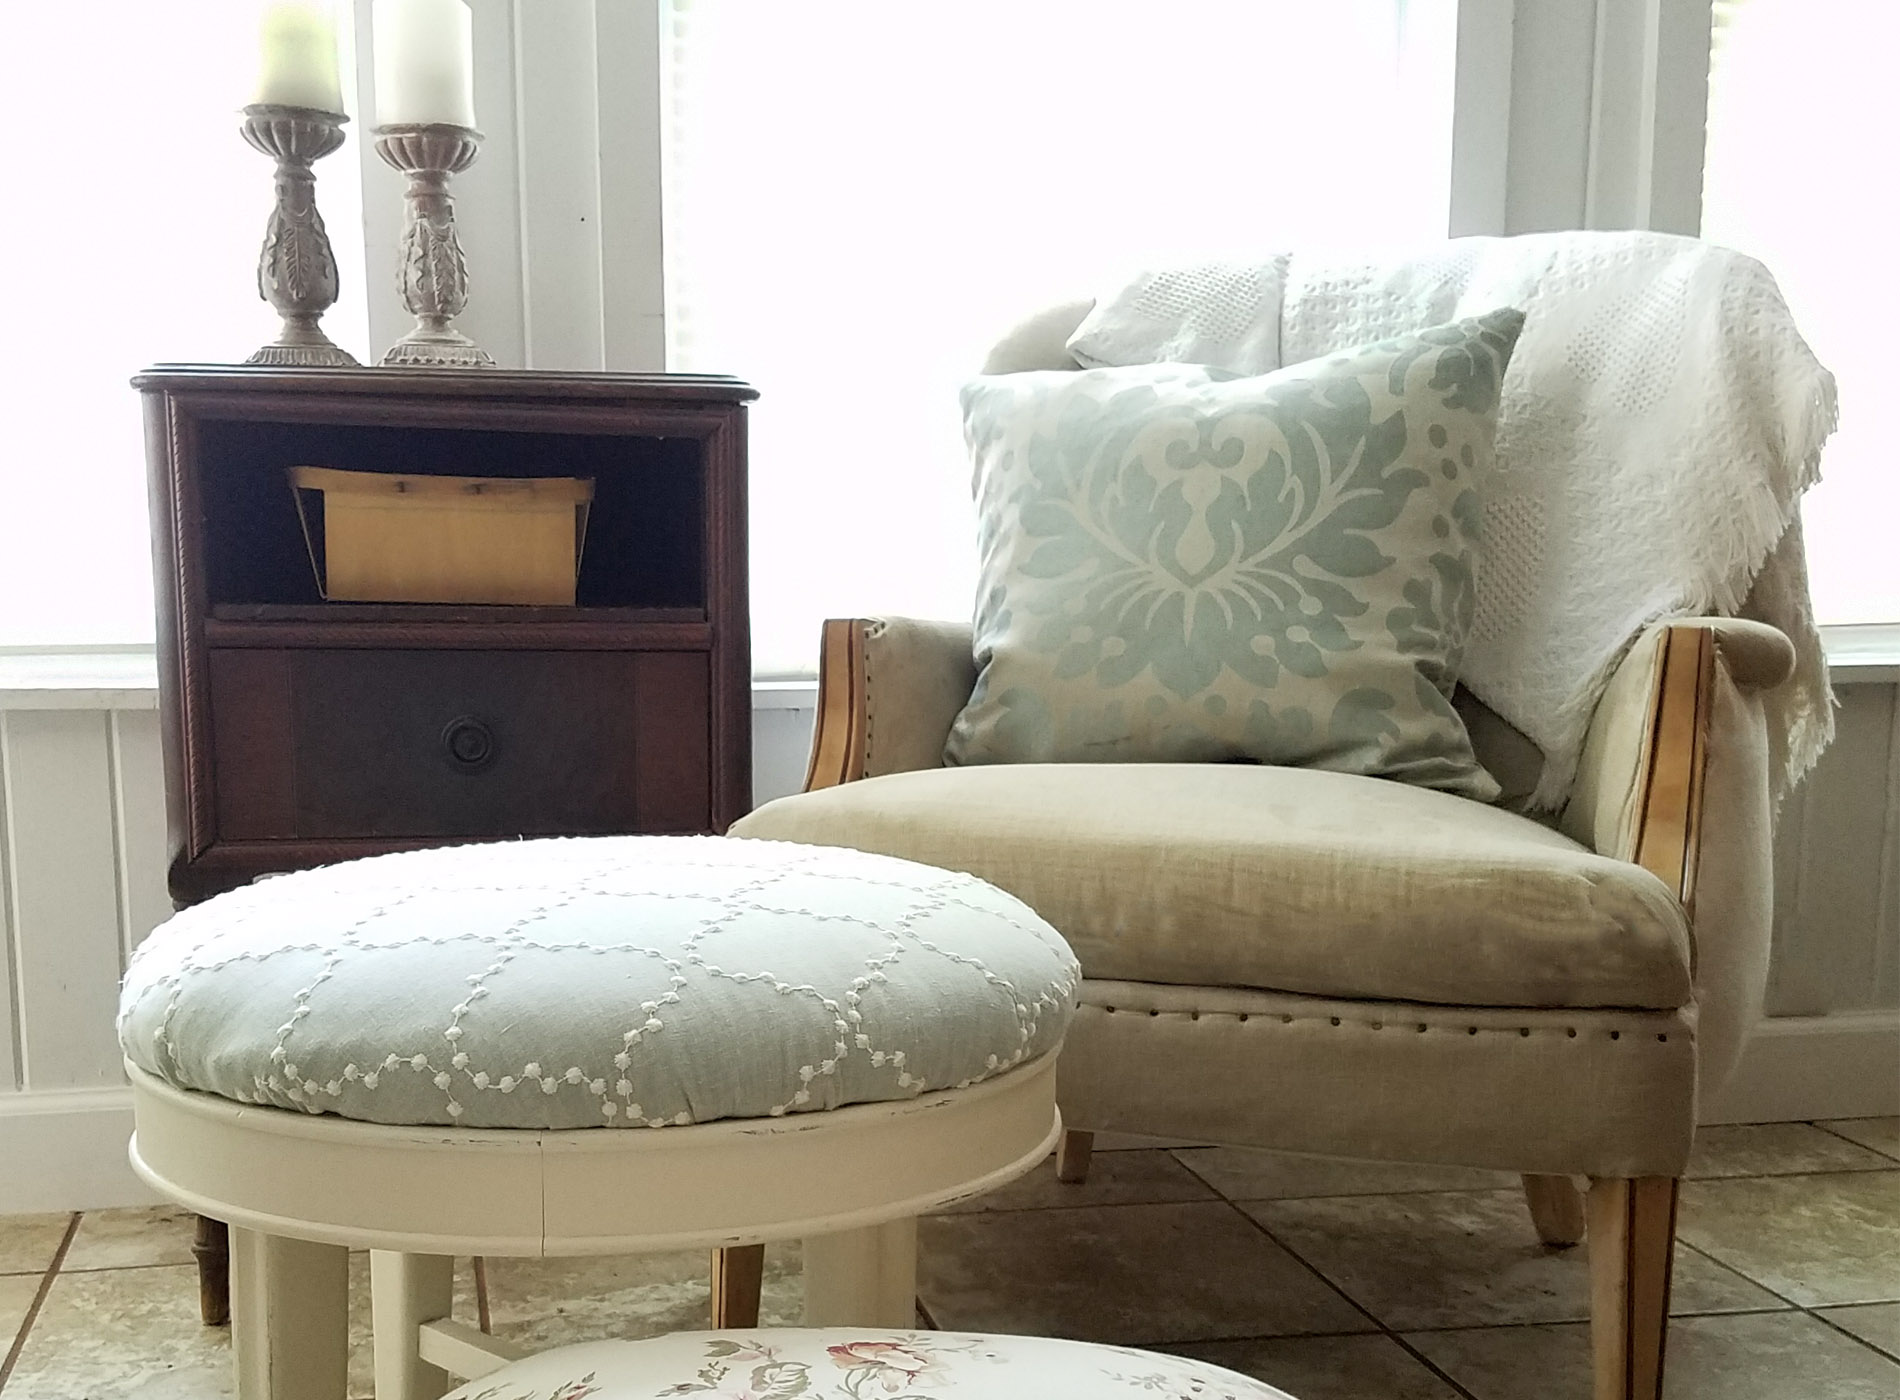 Featured Upholstered Footstools by Prodigal Pieces | prodigalpieces.com